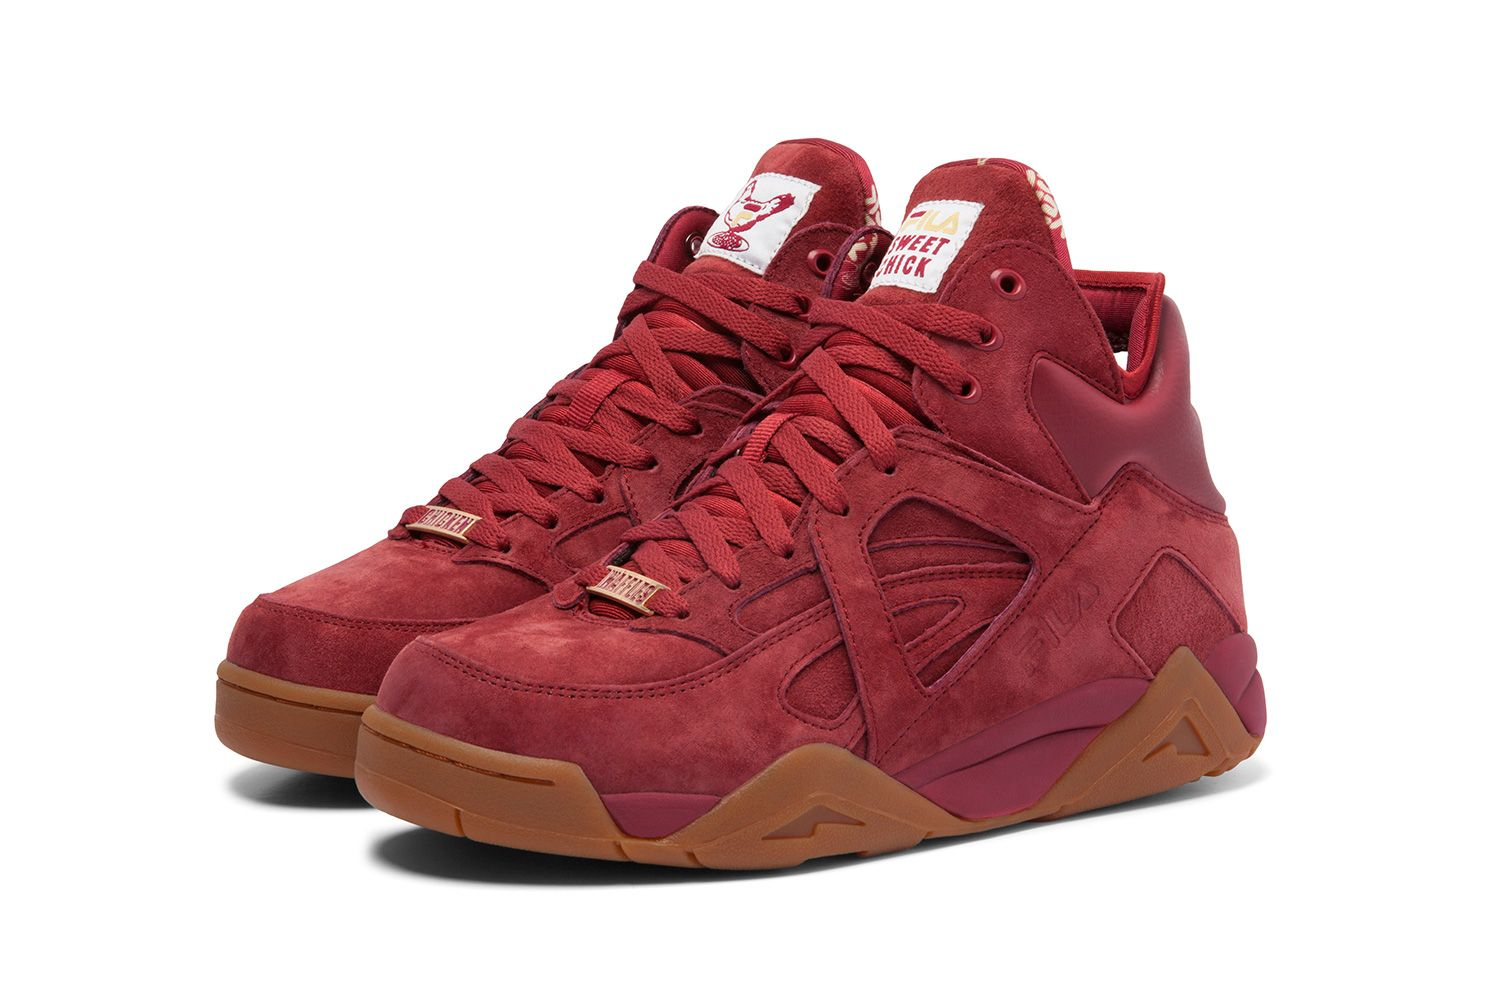 Sneaker Lickin' A Collaborates Fila Chick Finger For With Cage Sweet aSxqp1F